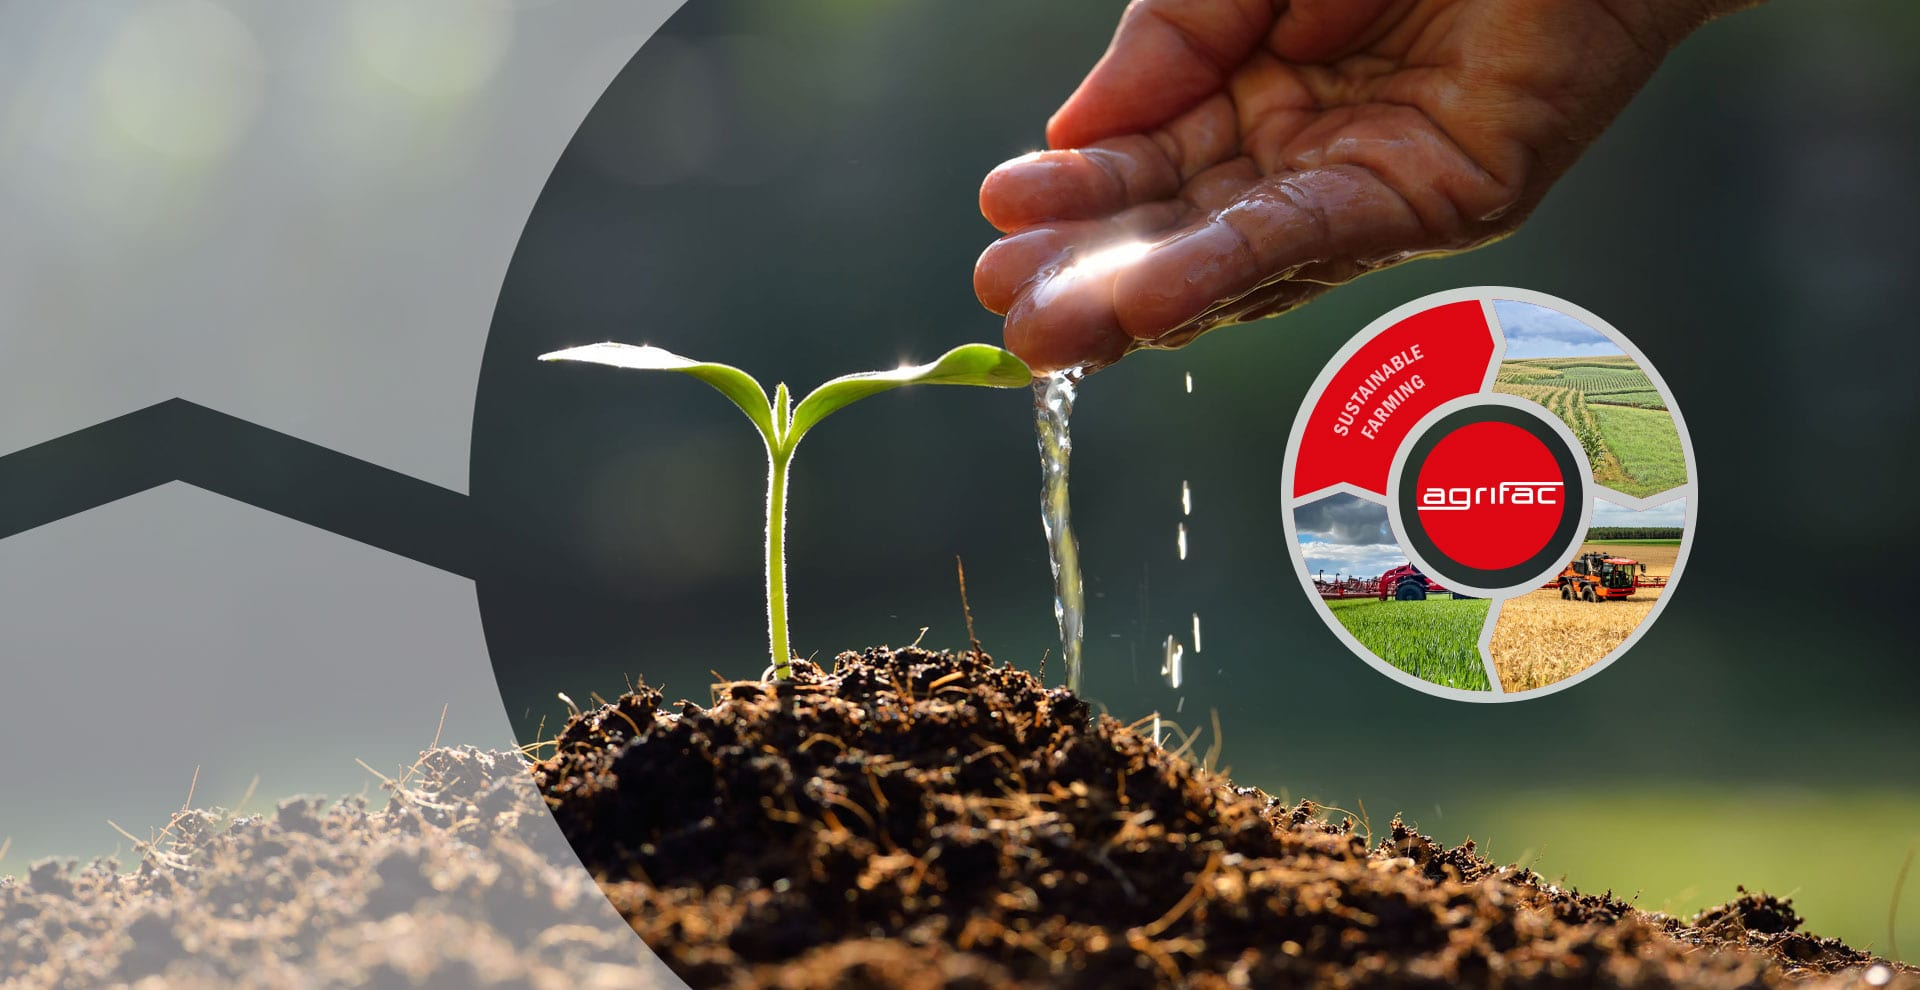 Sustainable Farming by Agrifac